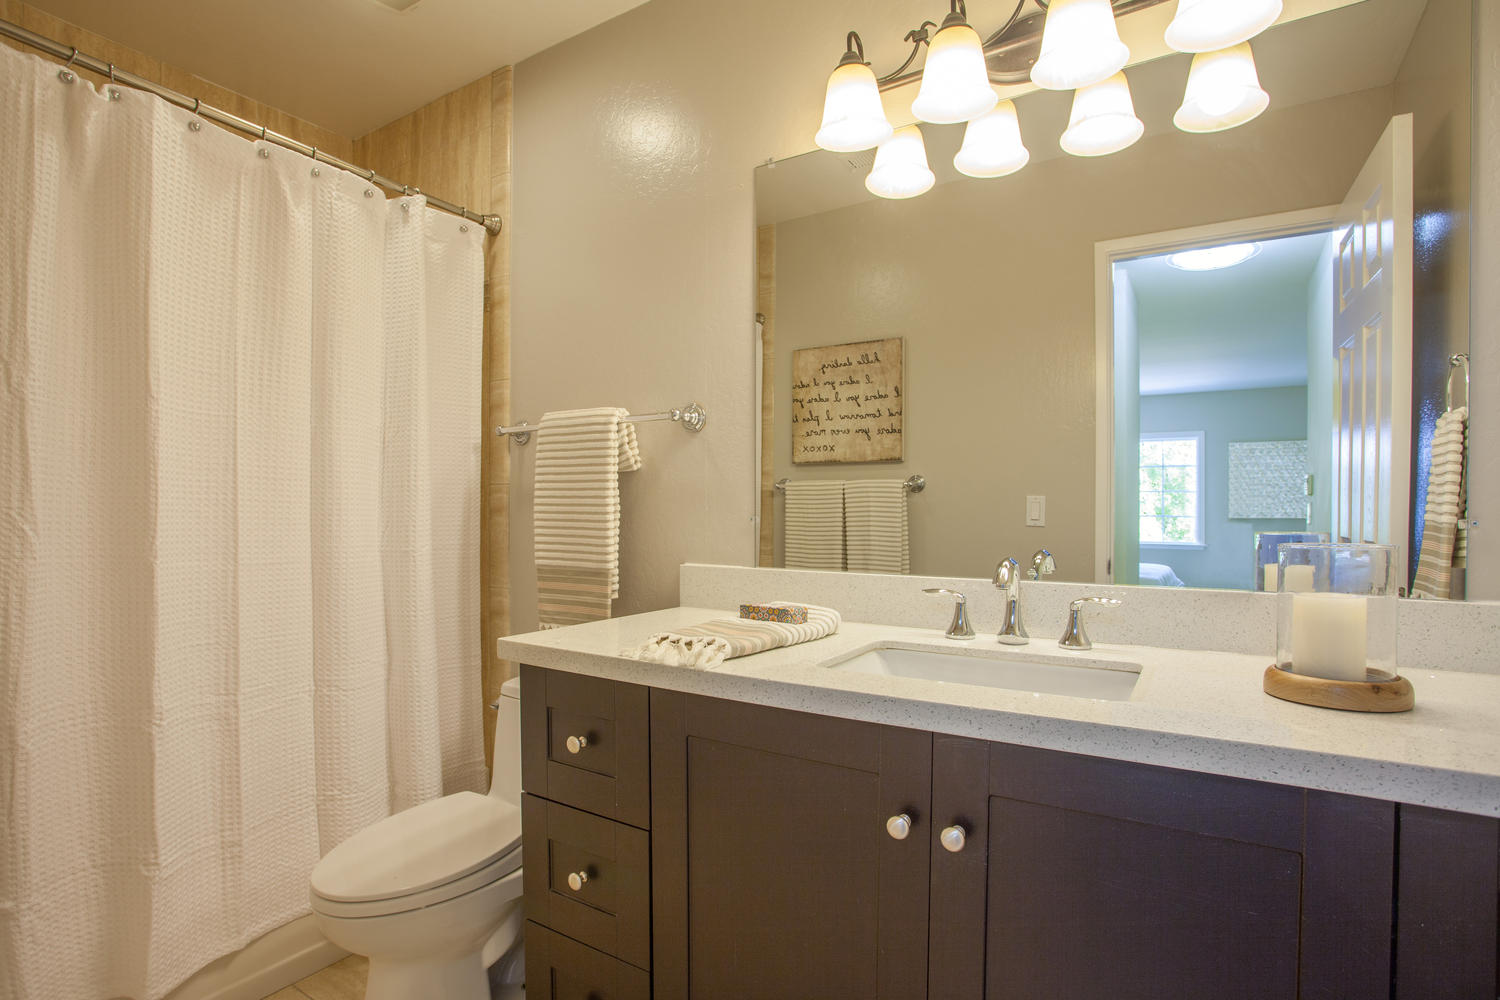 3519 Calvelli Ct San Jose CA-large-012-11-Master Bathroom-1500x1000-72dpi.jpg